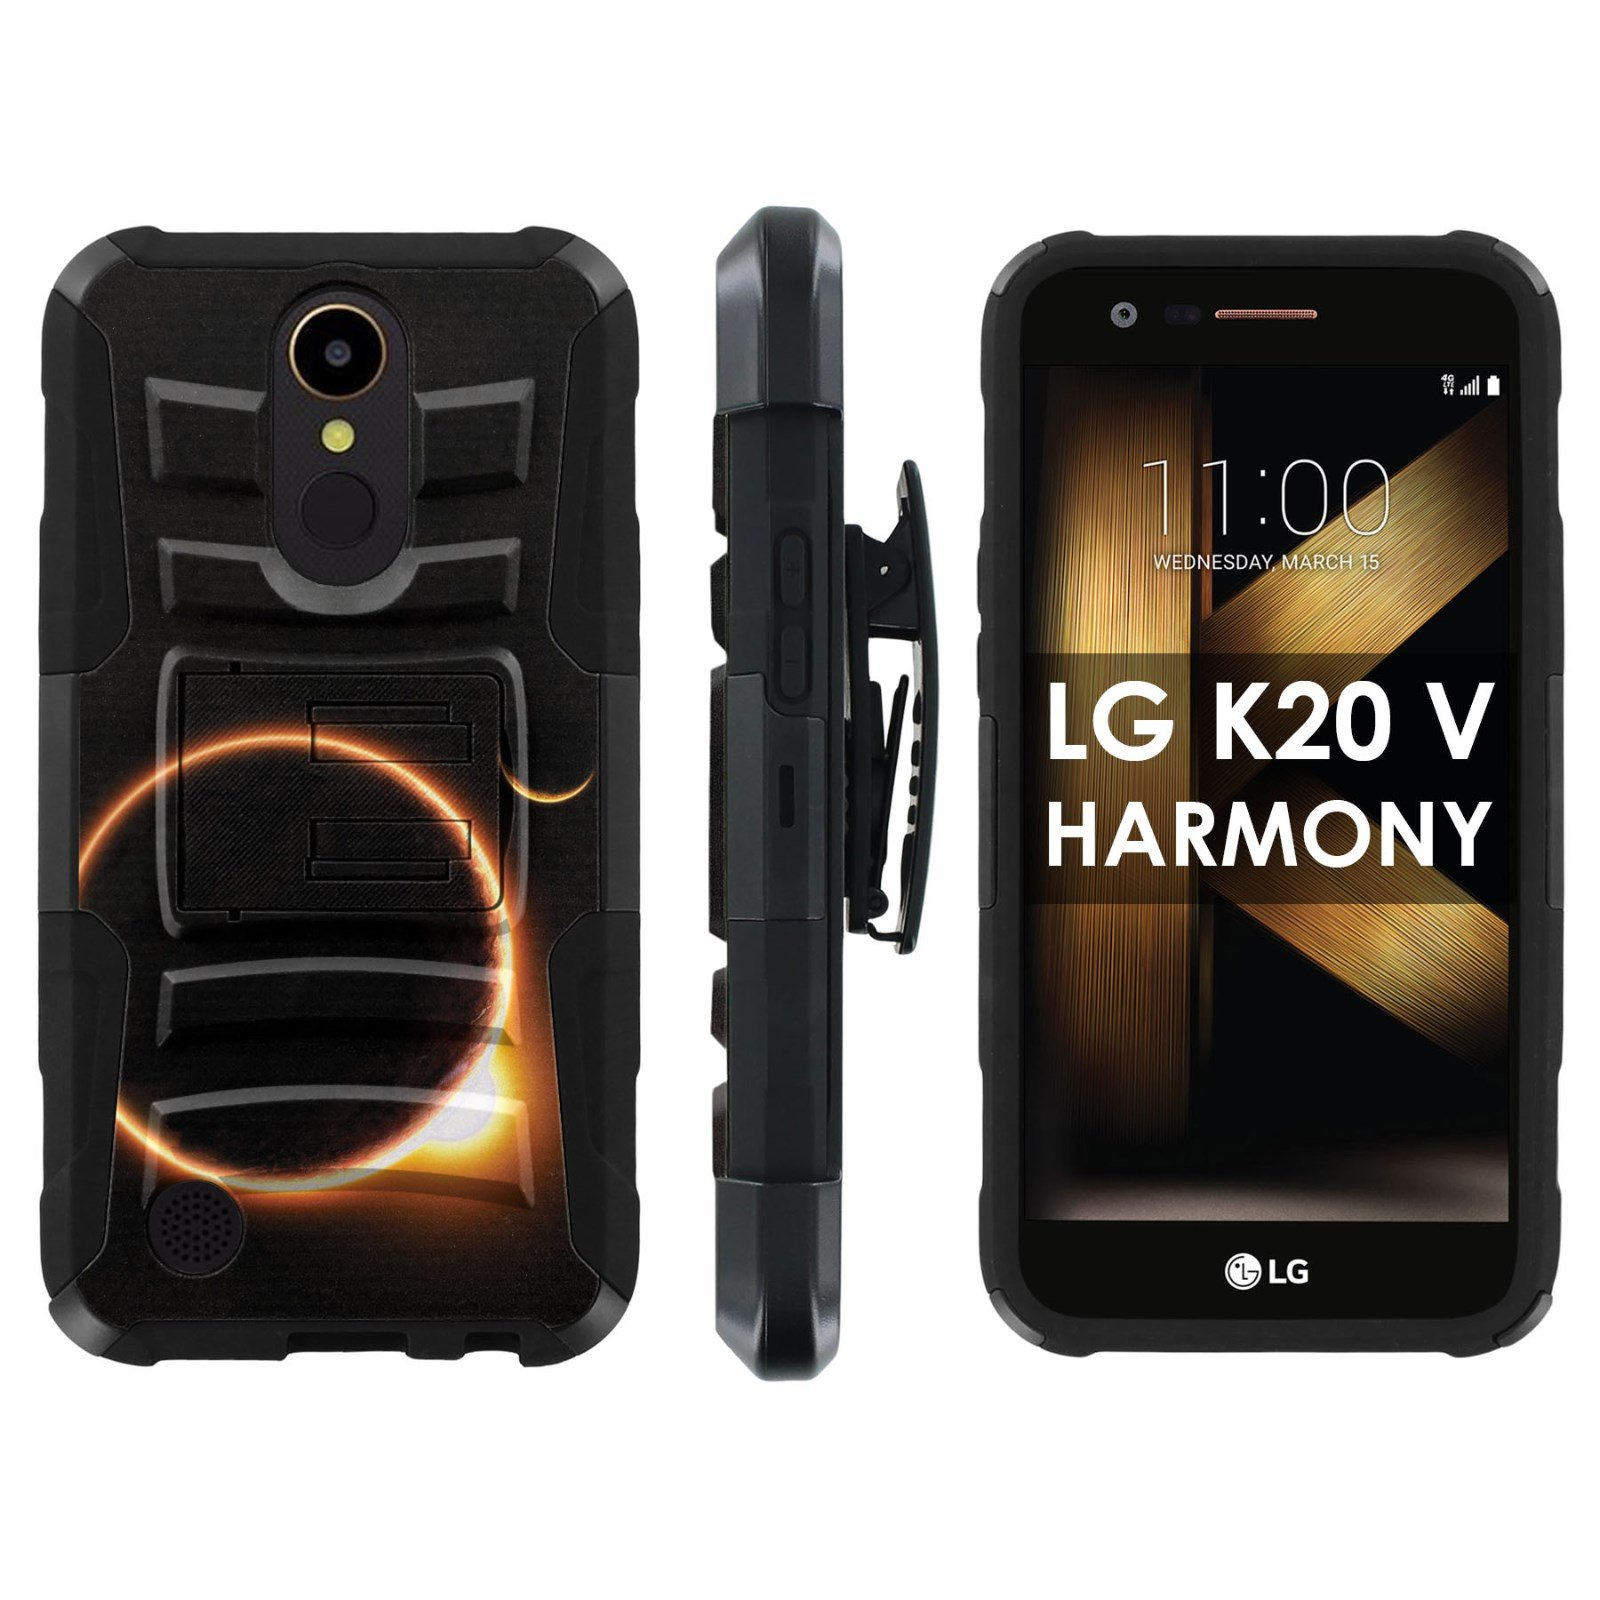 LG [K20 V/ K20 plus] LG Harmony Phone Cover [Mobiflare] [Black/Black] Dual Hybrid Armor Phone Case [Screen Protector INCLUDED] - [Solar Eclipse]